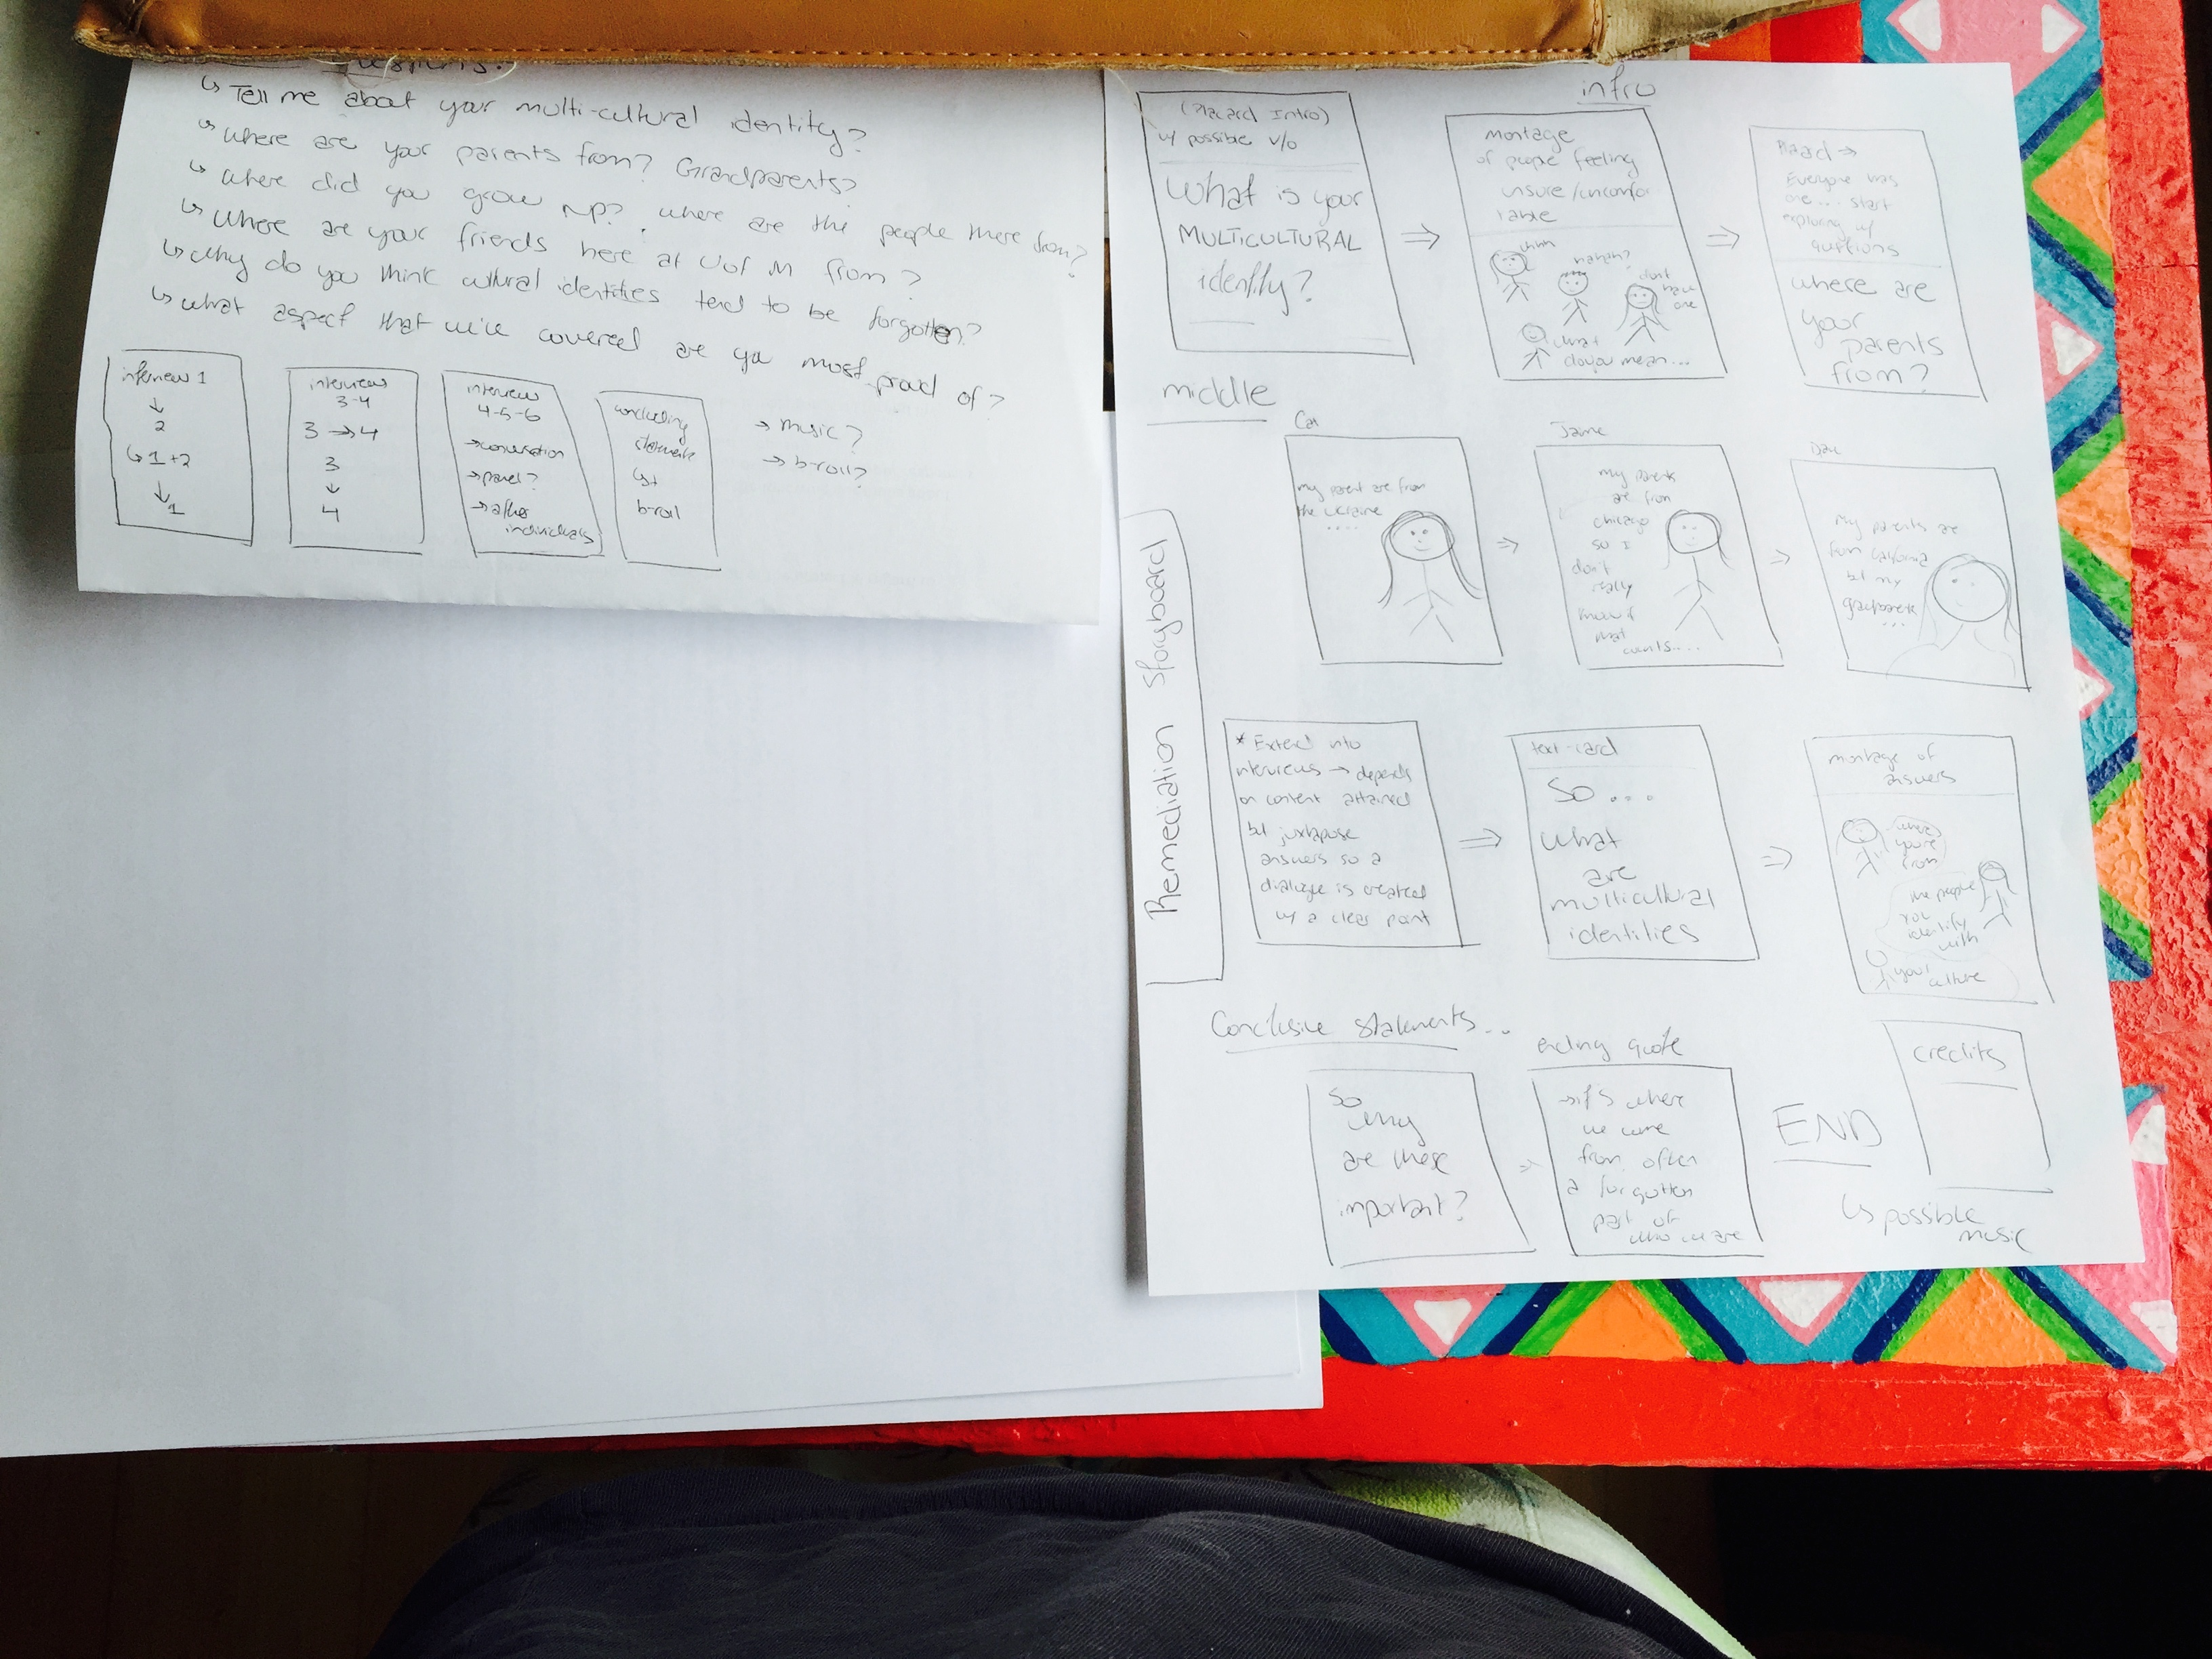 storyboard and questions